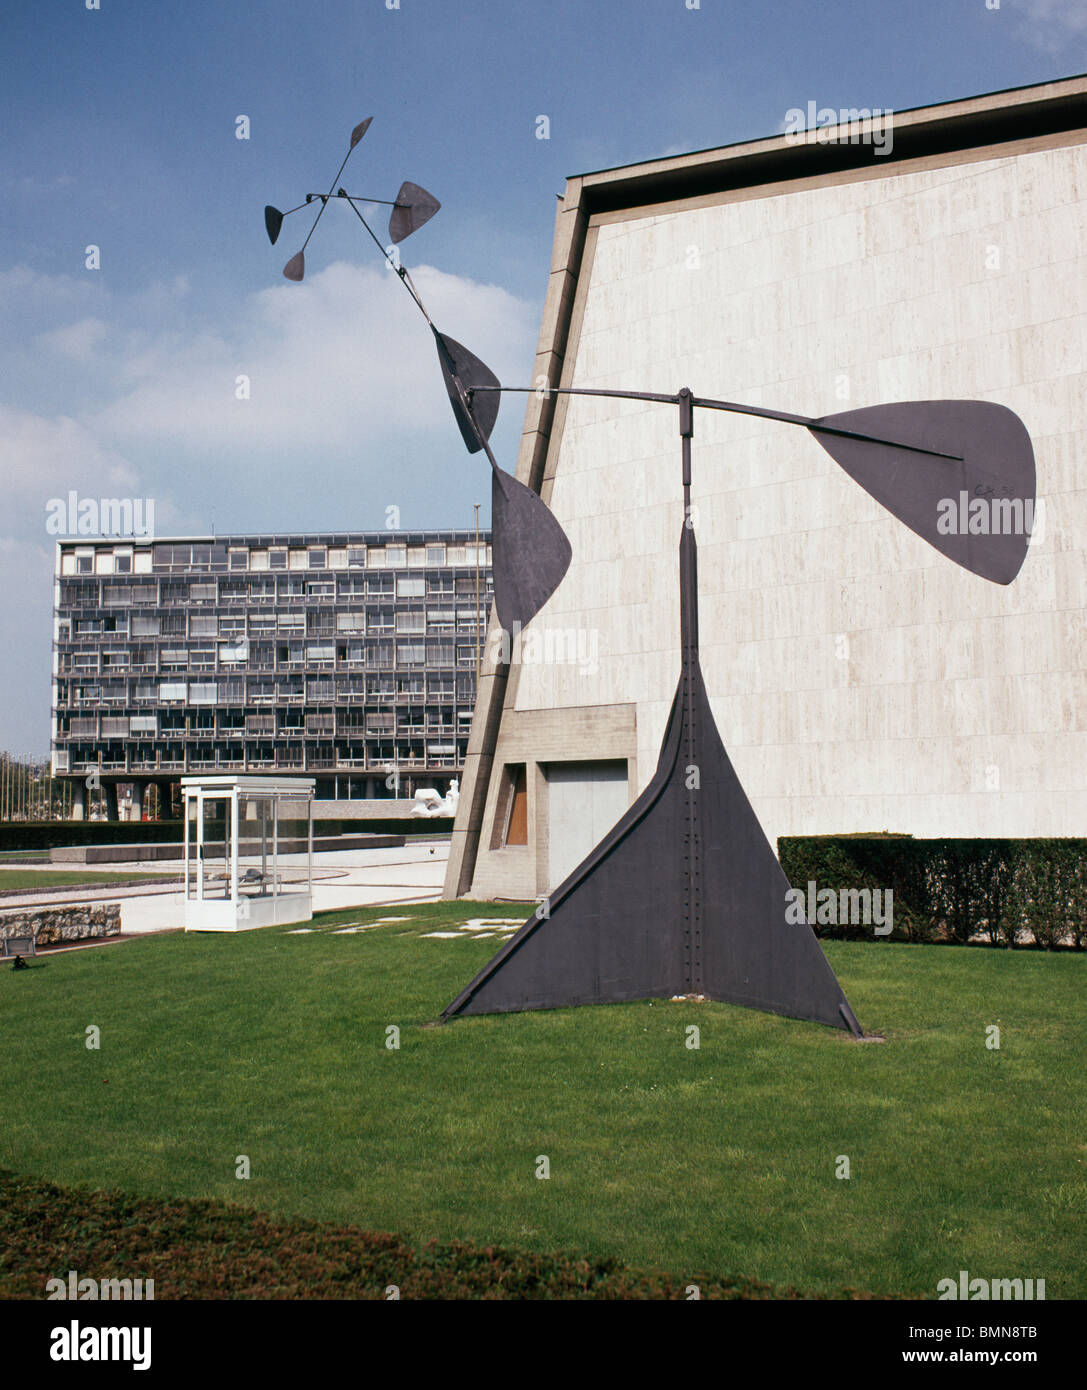 Spiral 1958 mobile by Alexander Calder at Unesco House, Paris, France. Buildings designed by Breuer, Nervi and Zehrfuss. - Stock Image